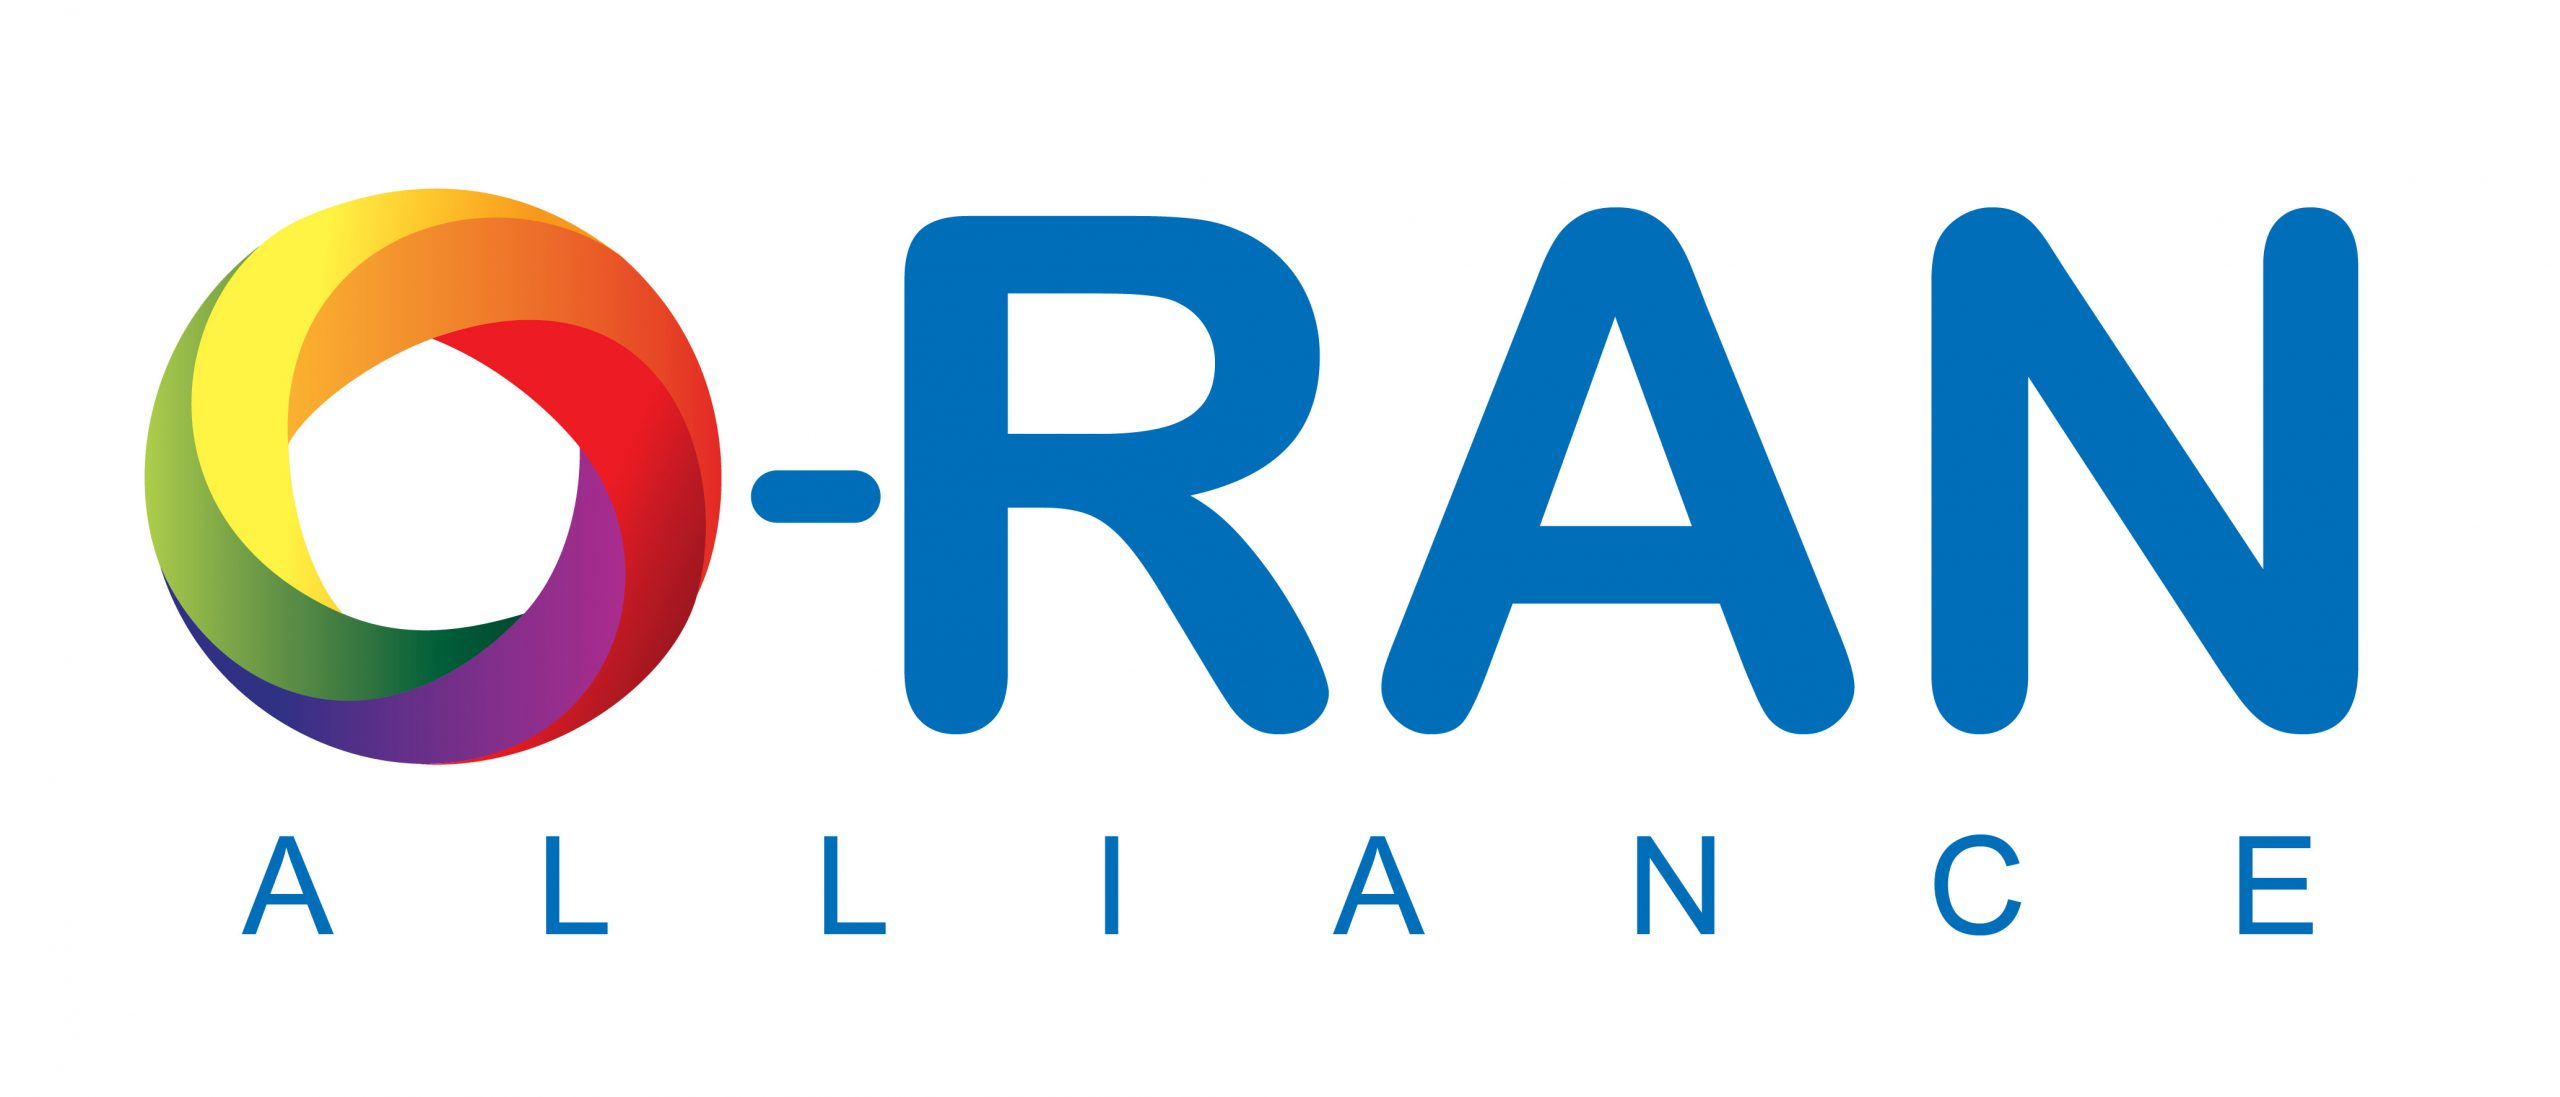 Altiostar's Nagendra Bykampadi elected as new co-chair for O-RAN ALLIANCE Security Focus Group